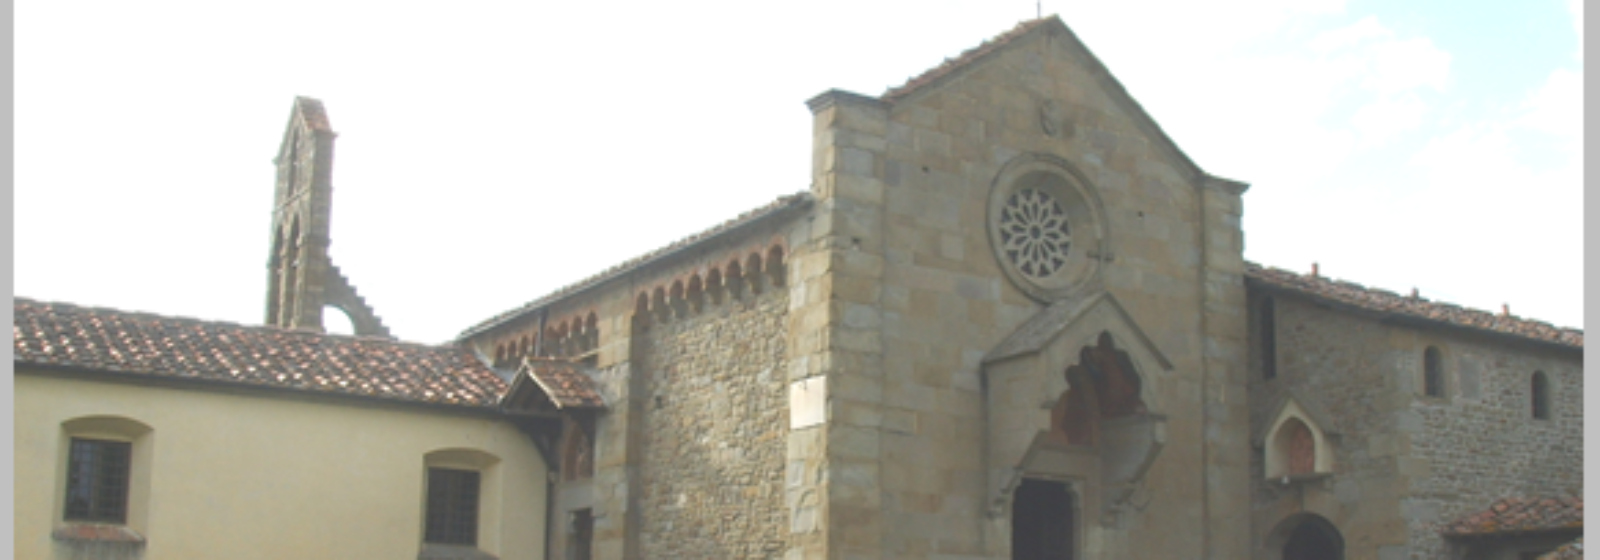 S. Francesco - Fiesole